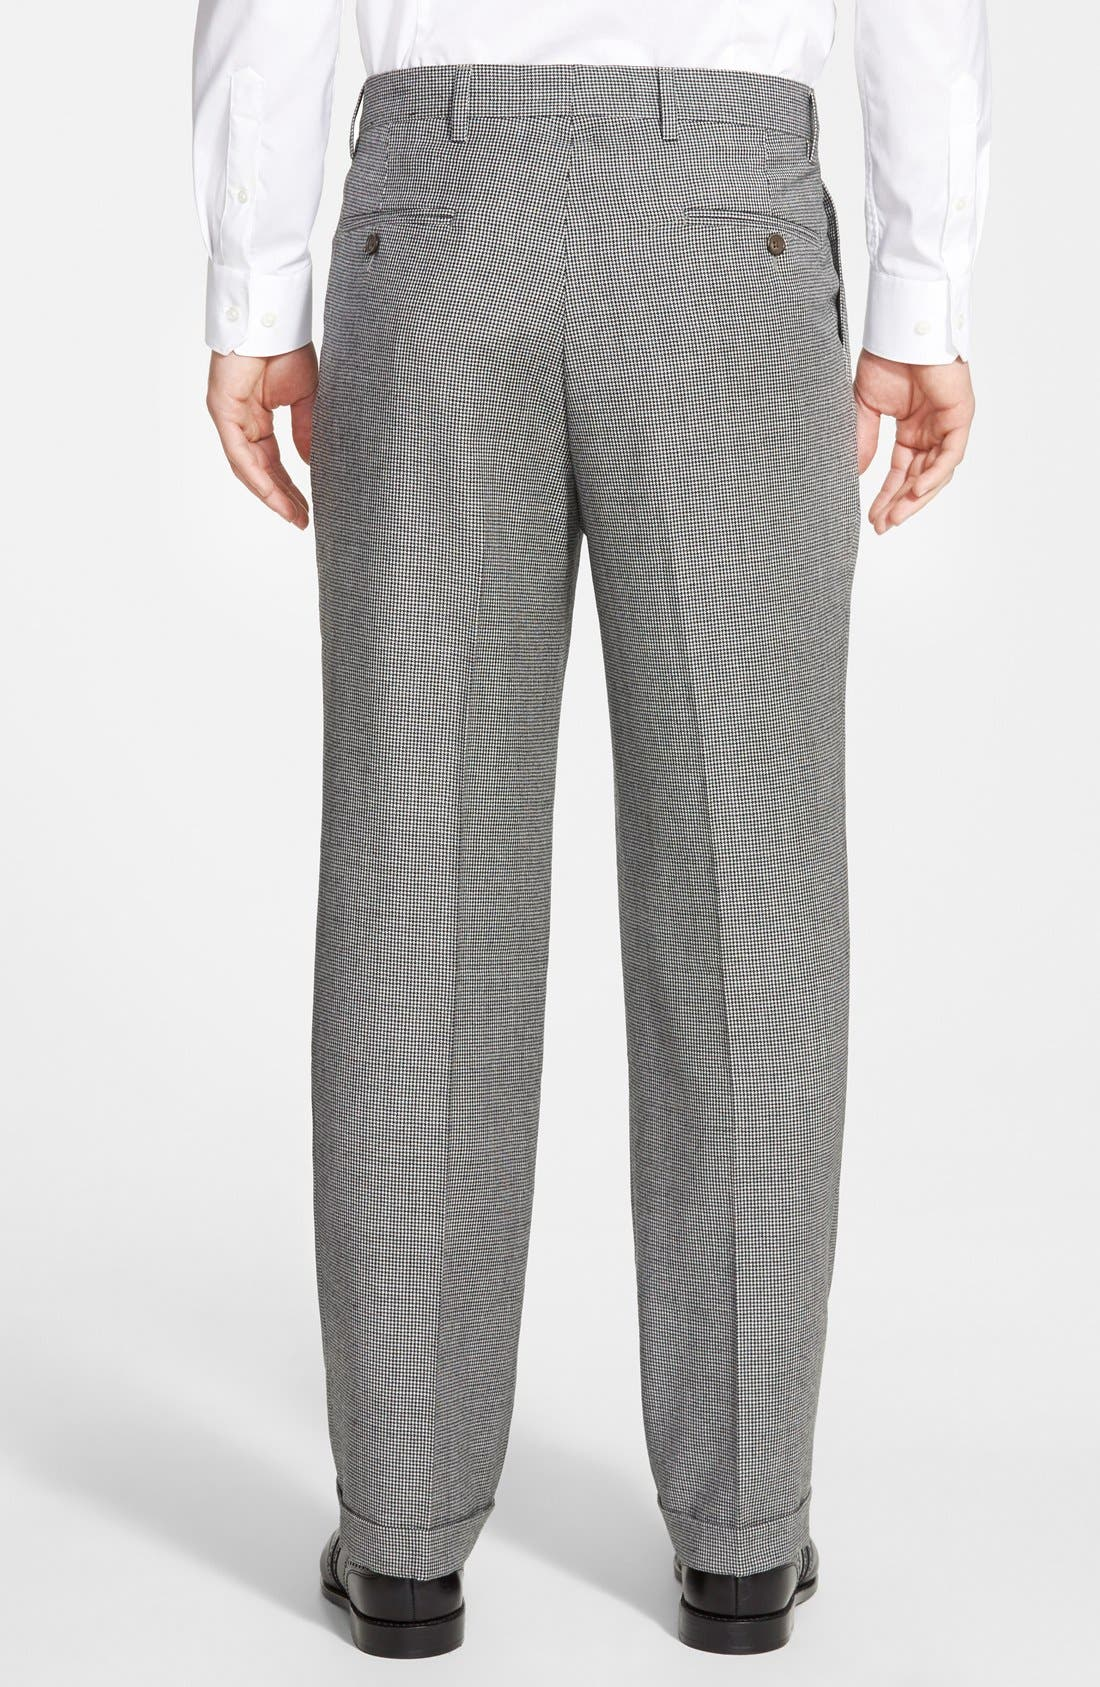 Pleated Houndstooth Wool Trousers,                             Alternate thumbnail 3, color,                             060